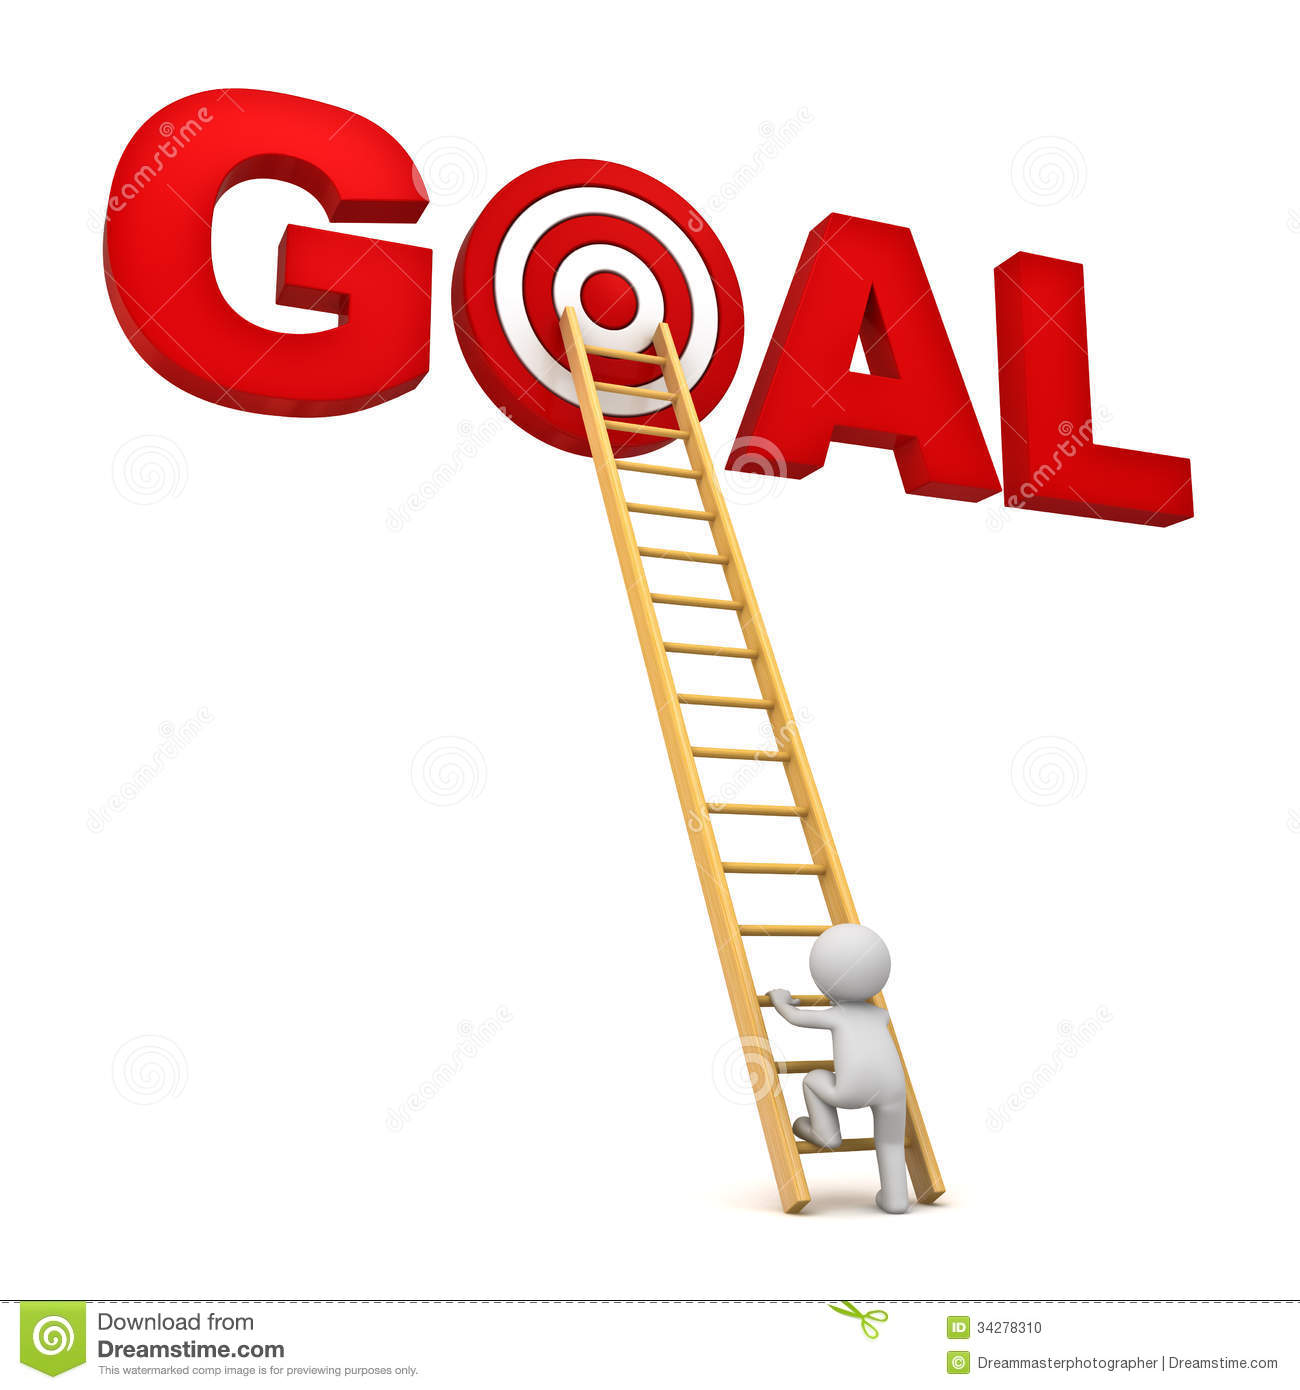 Achieving Goals Clipart - Clipart Suggest